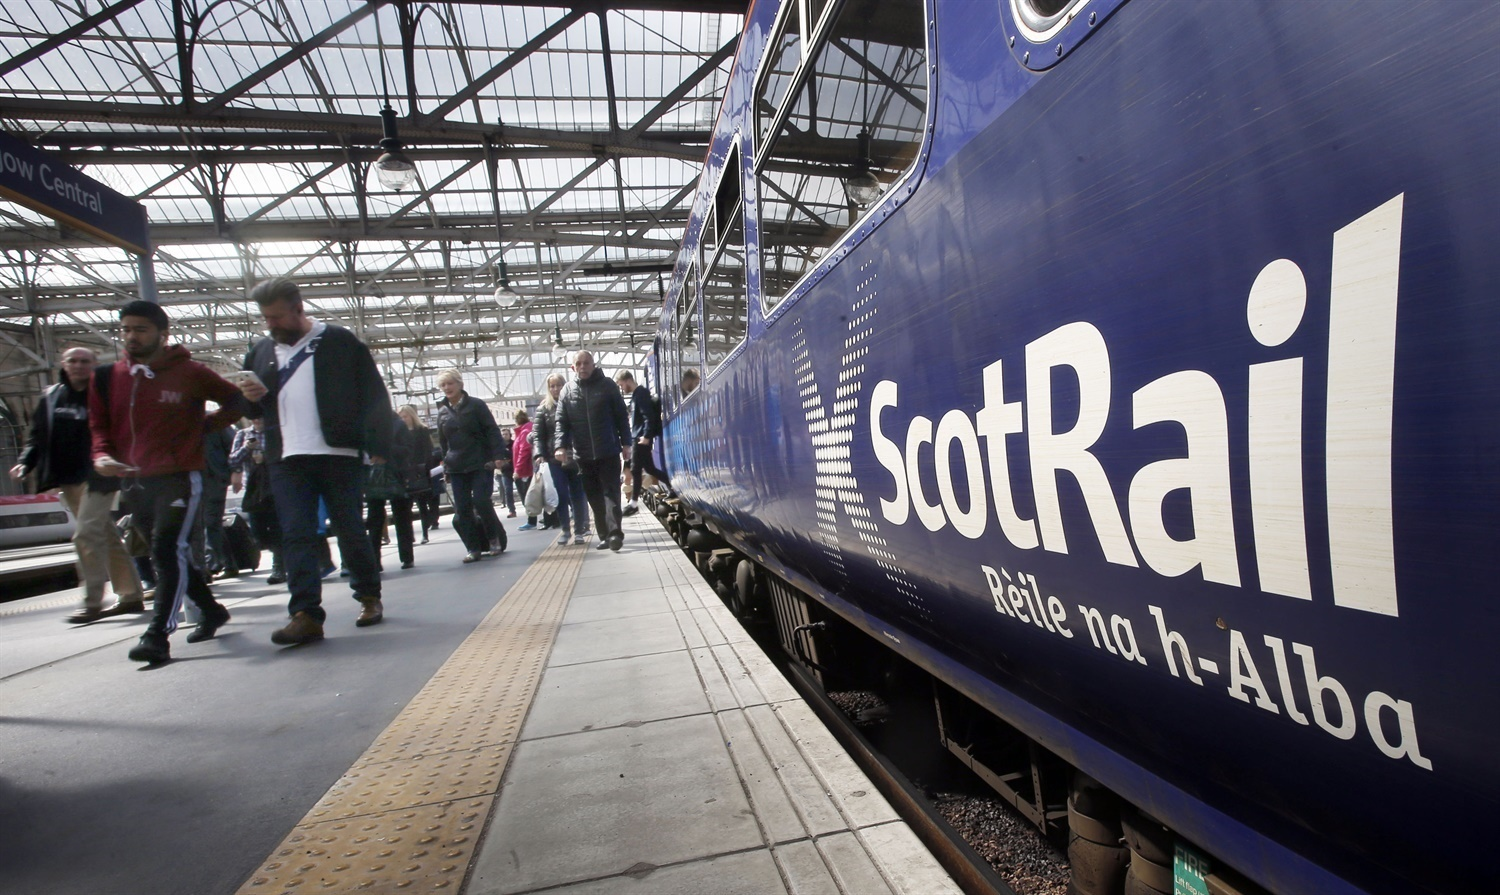 Abellio accepts ScotRail failings but apportions blame to government contract